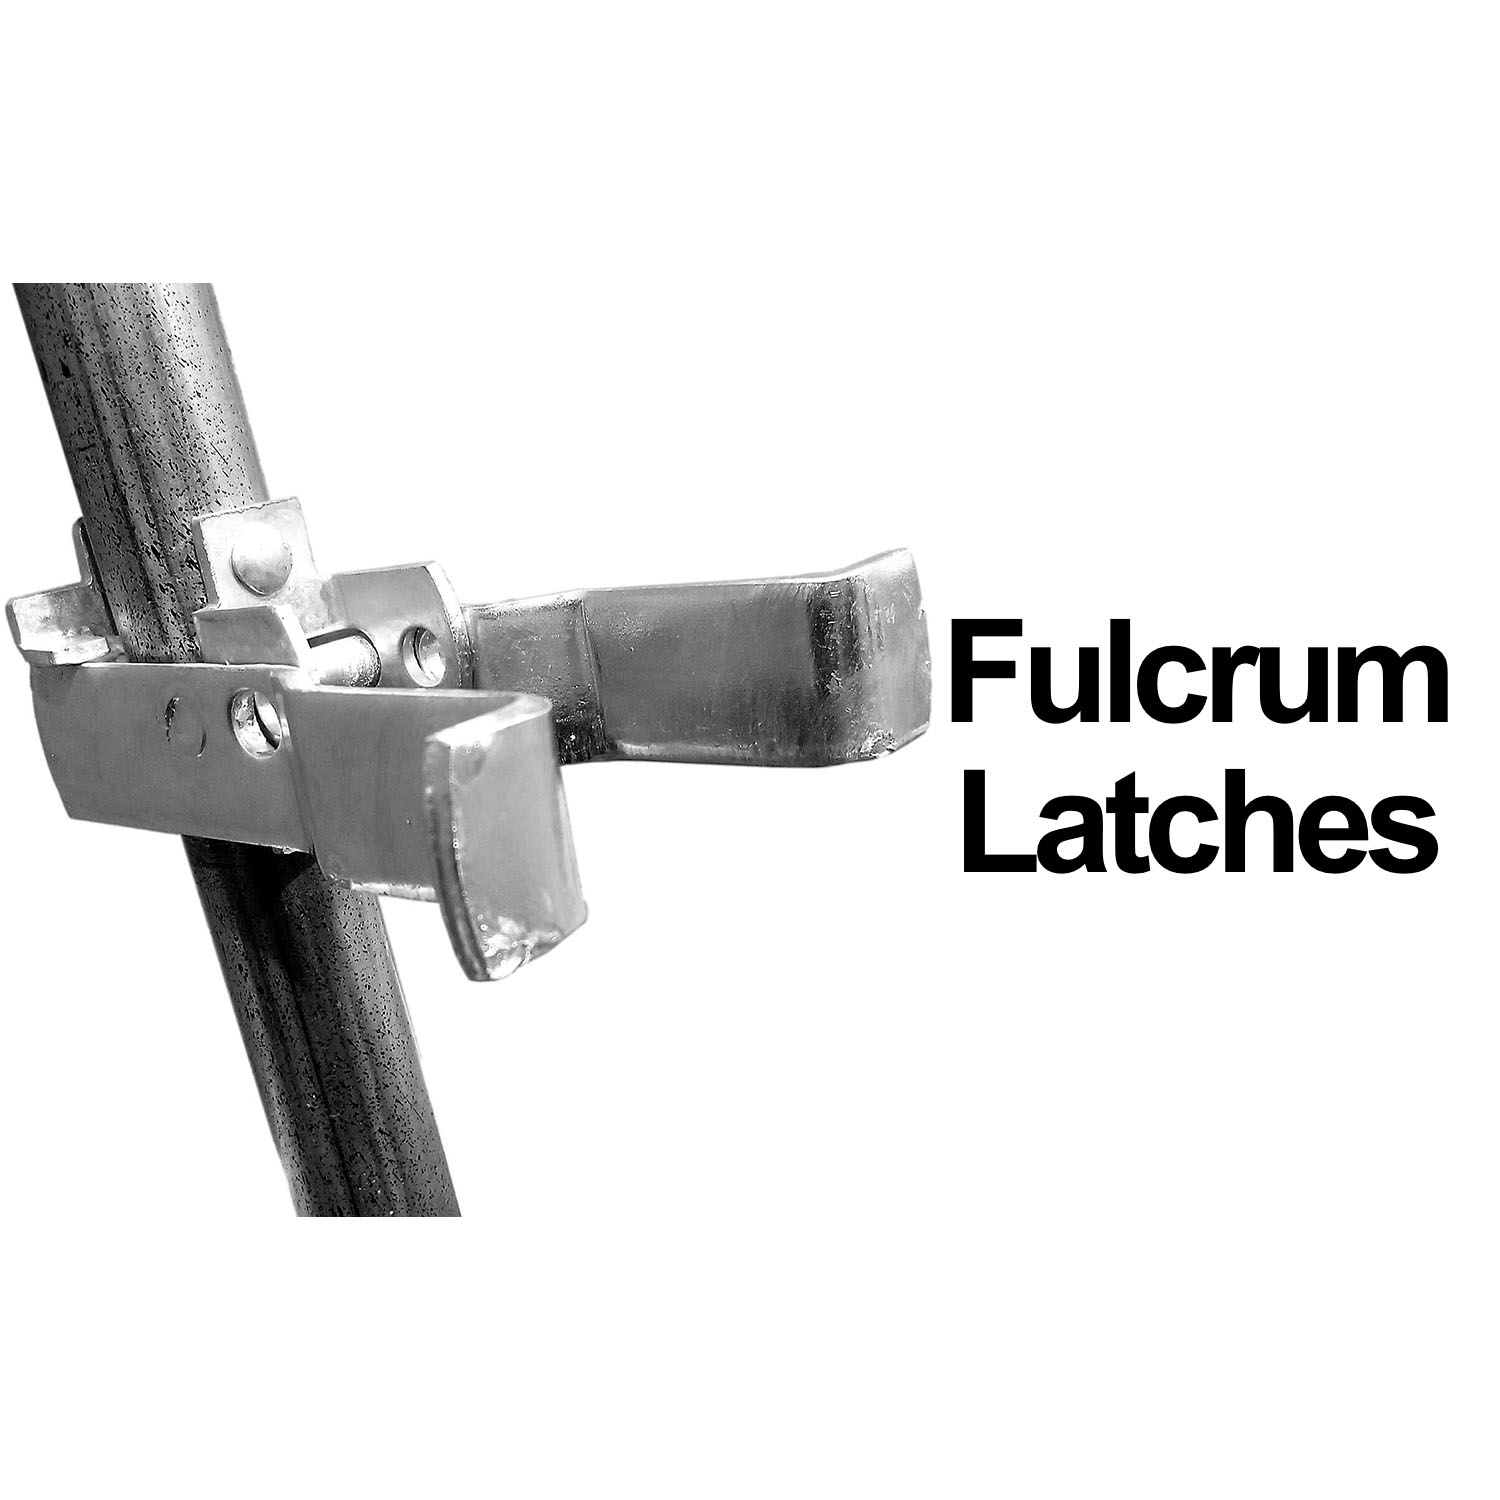 Chain Link Single Gate Fulcurm Latches